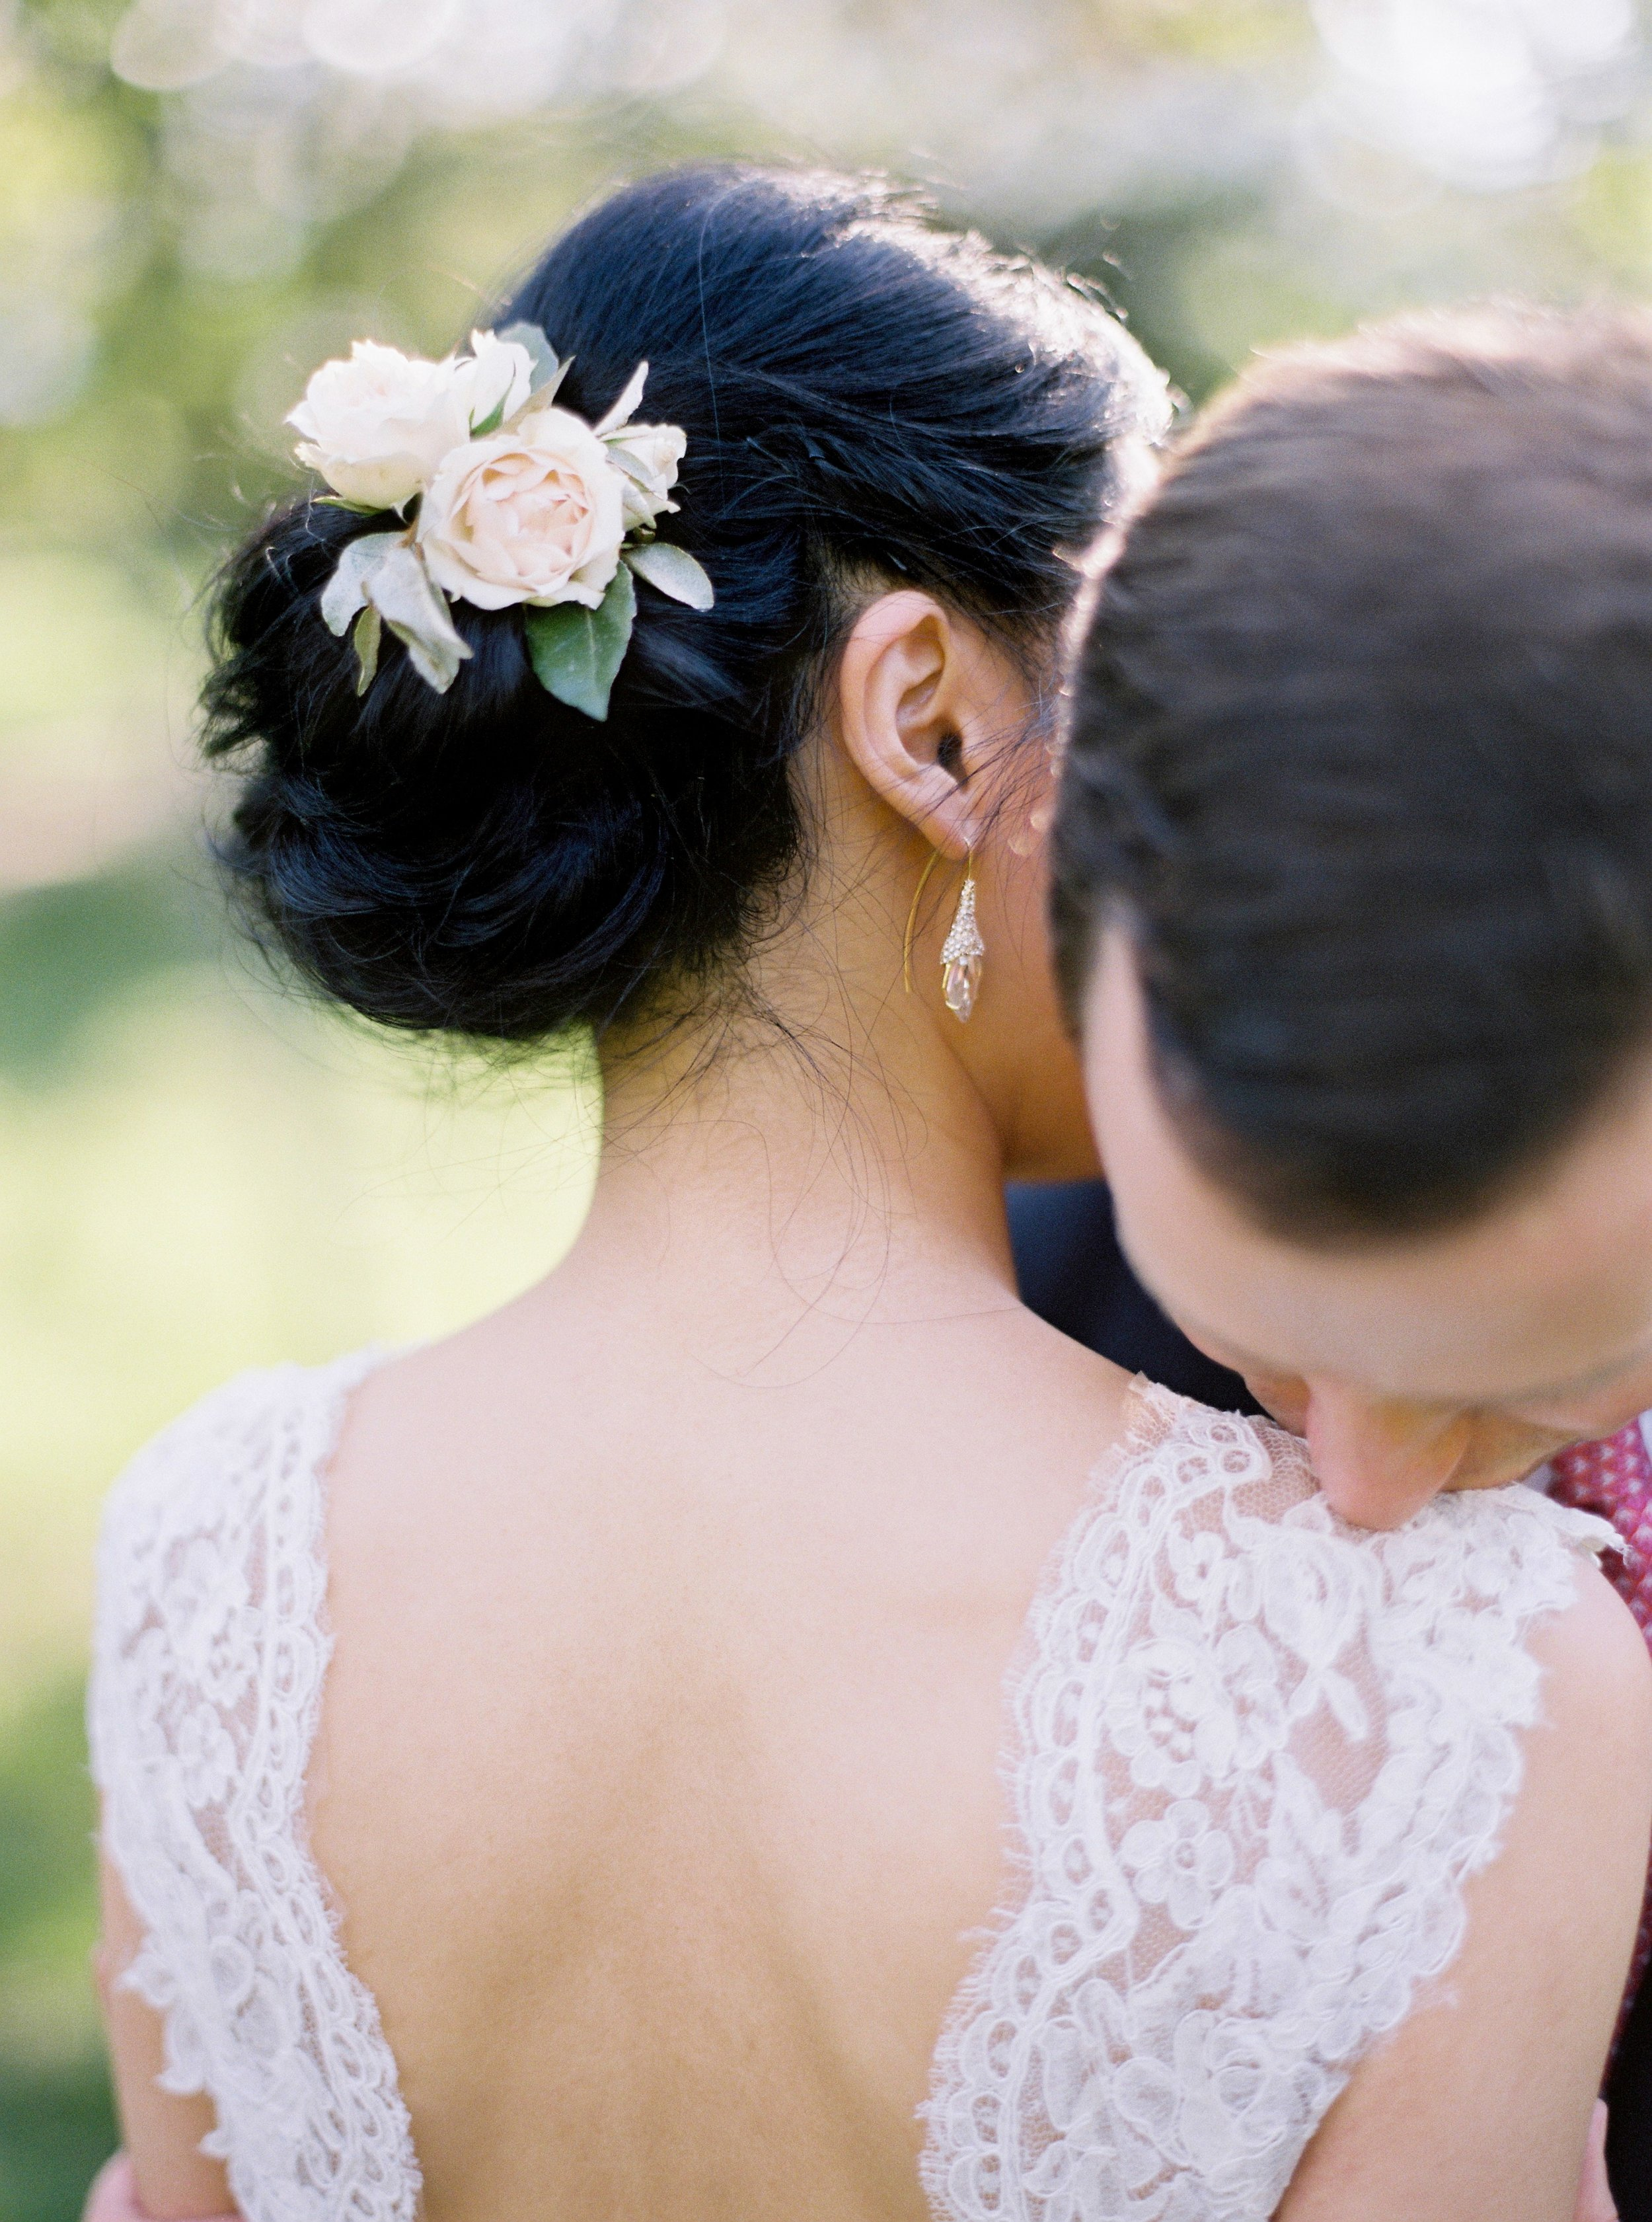 amelia_johnson_photography_laura&henry_wedding00116.jpg